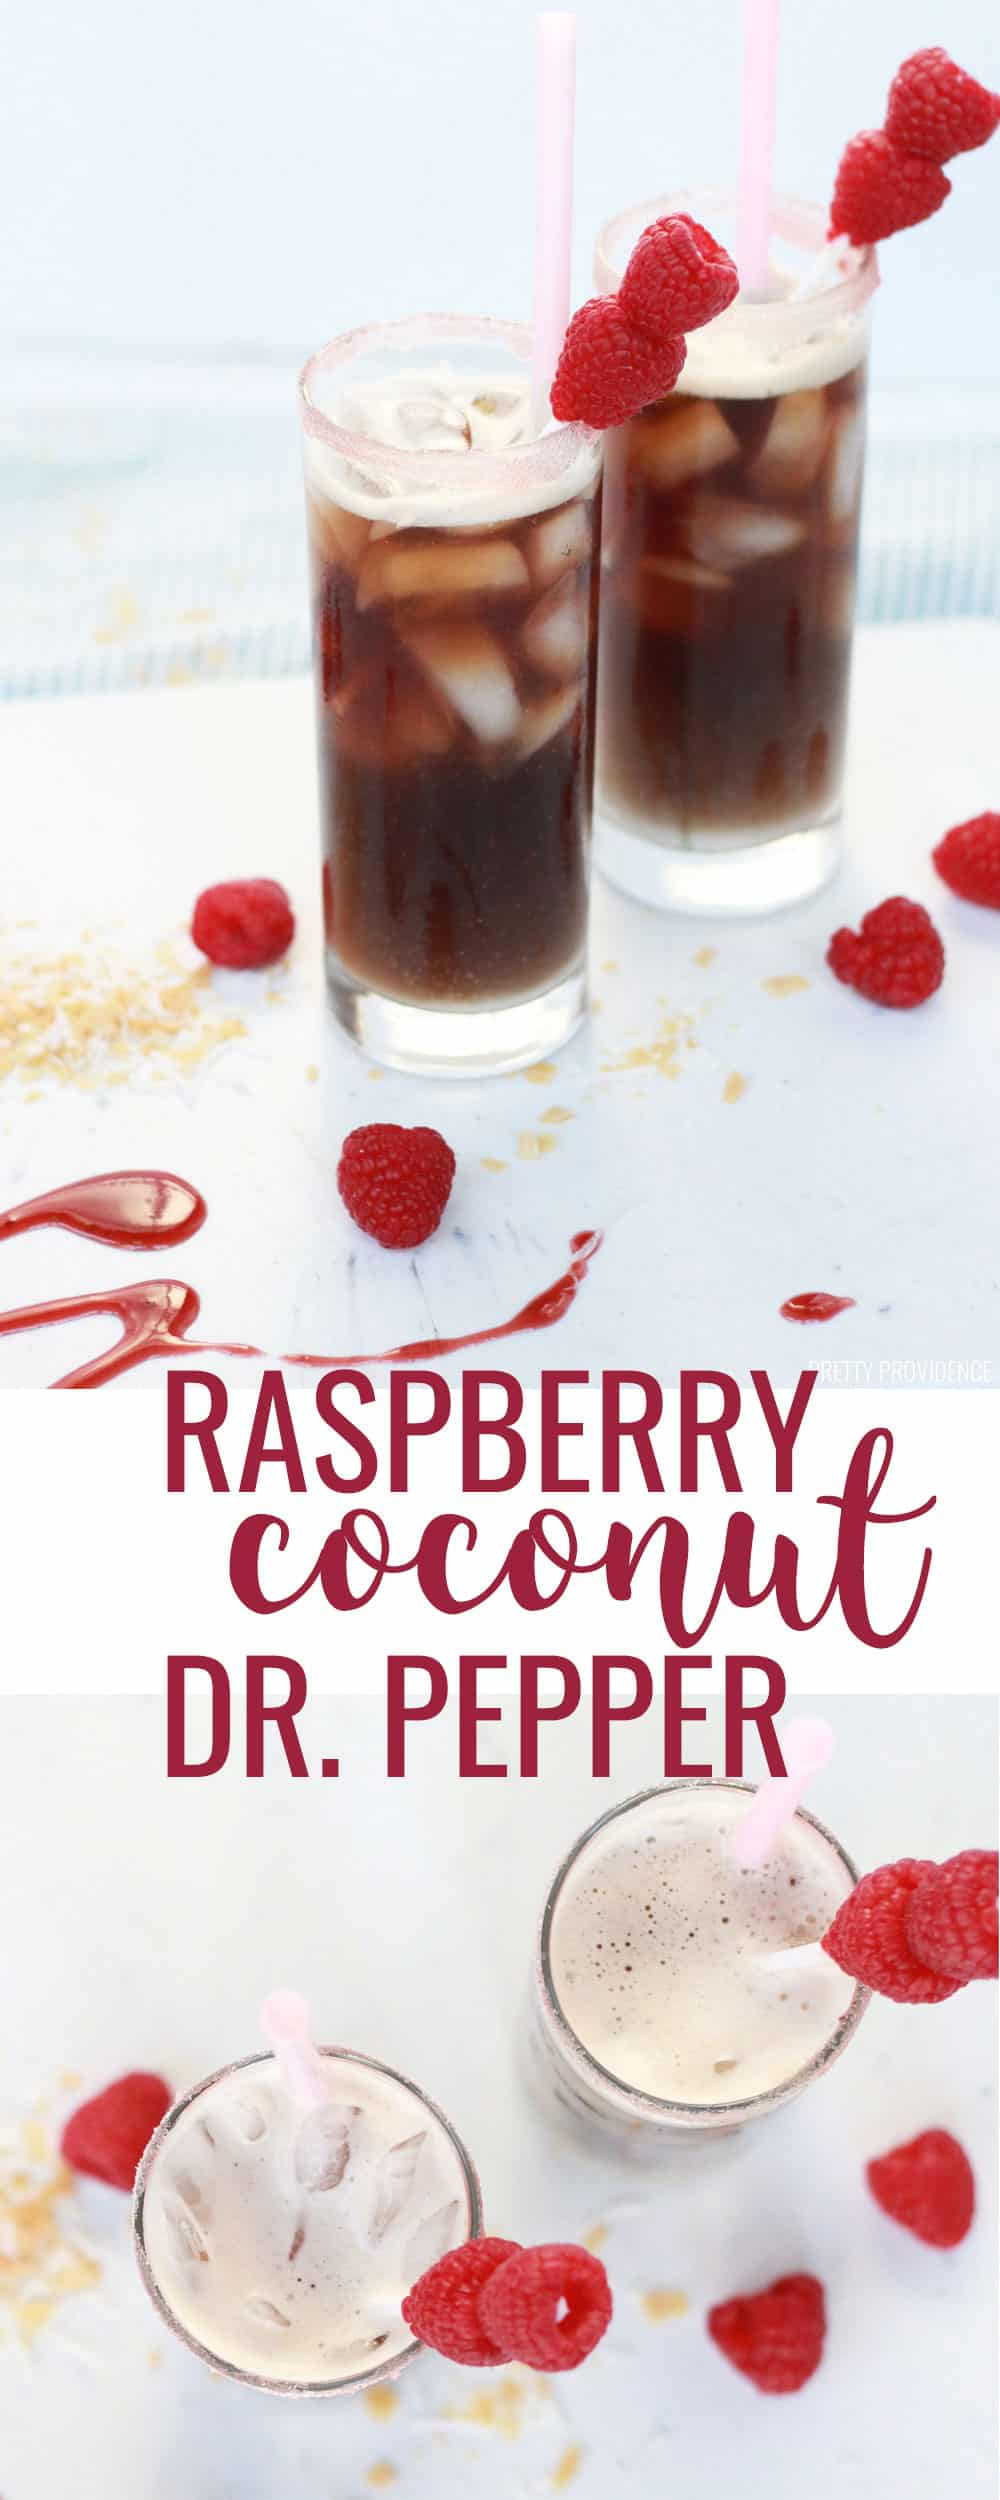 This non-alcoholic drink recipe made with Dr. Pepper, raspberry puree and coconut cream is TO DIE FOR! A Swig copycat recipe for their Raspberry Dream that you can make at home again and again!